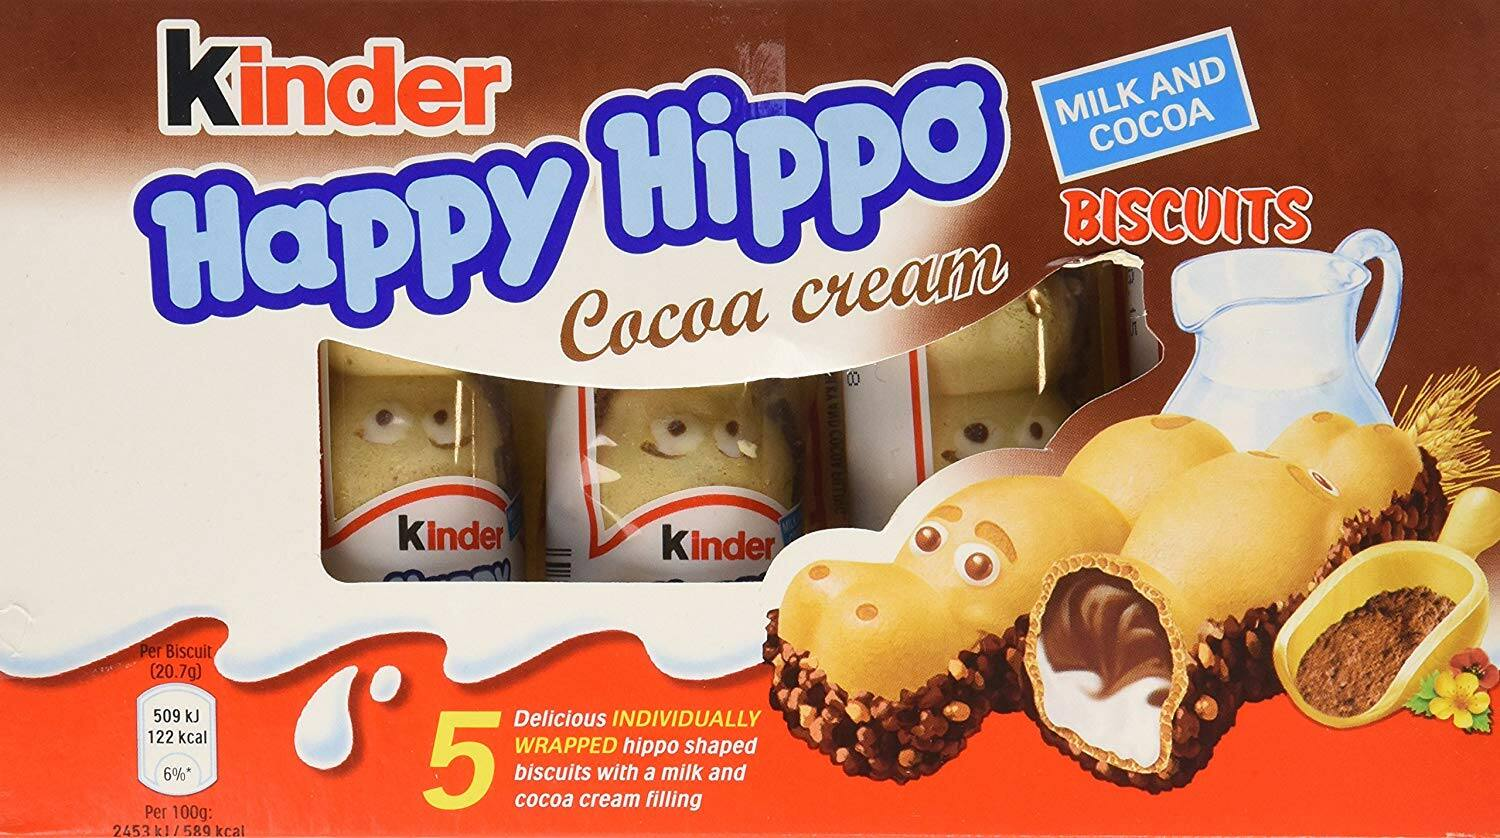 Kinder Happy Hippo - Cocoa, CASE, 10x(20.7g x 5) - $19.99